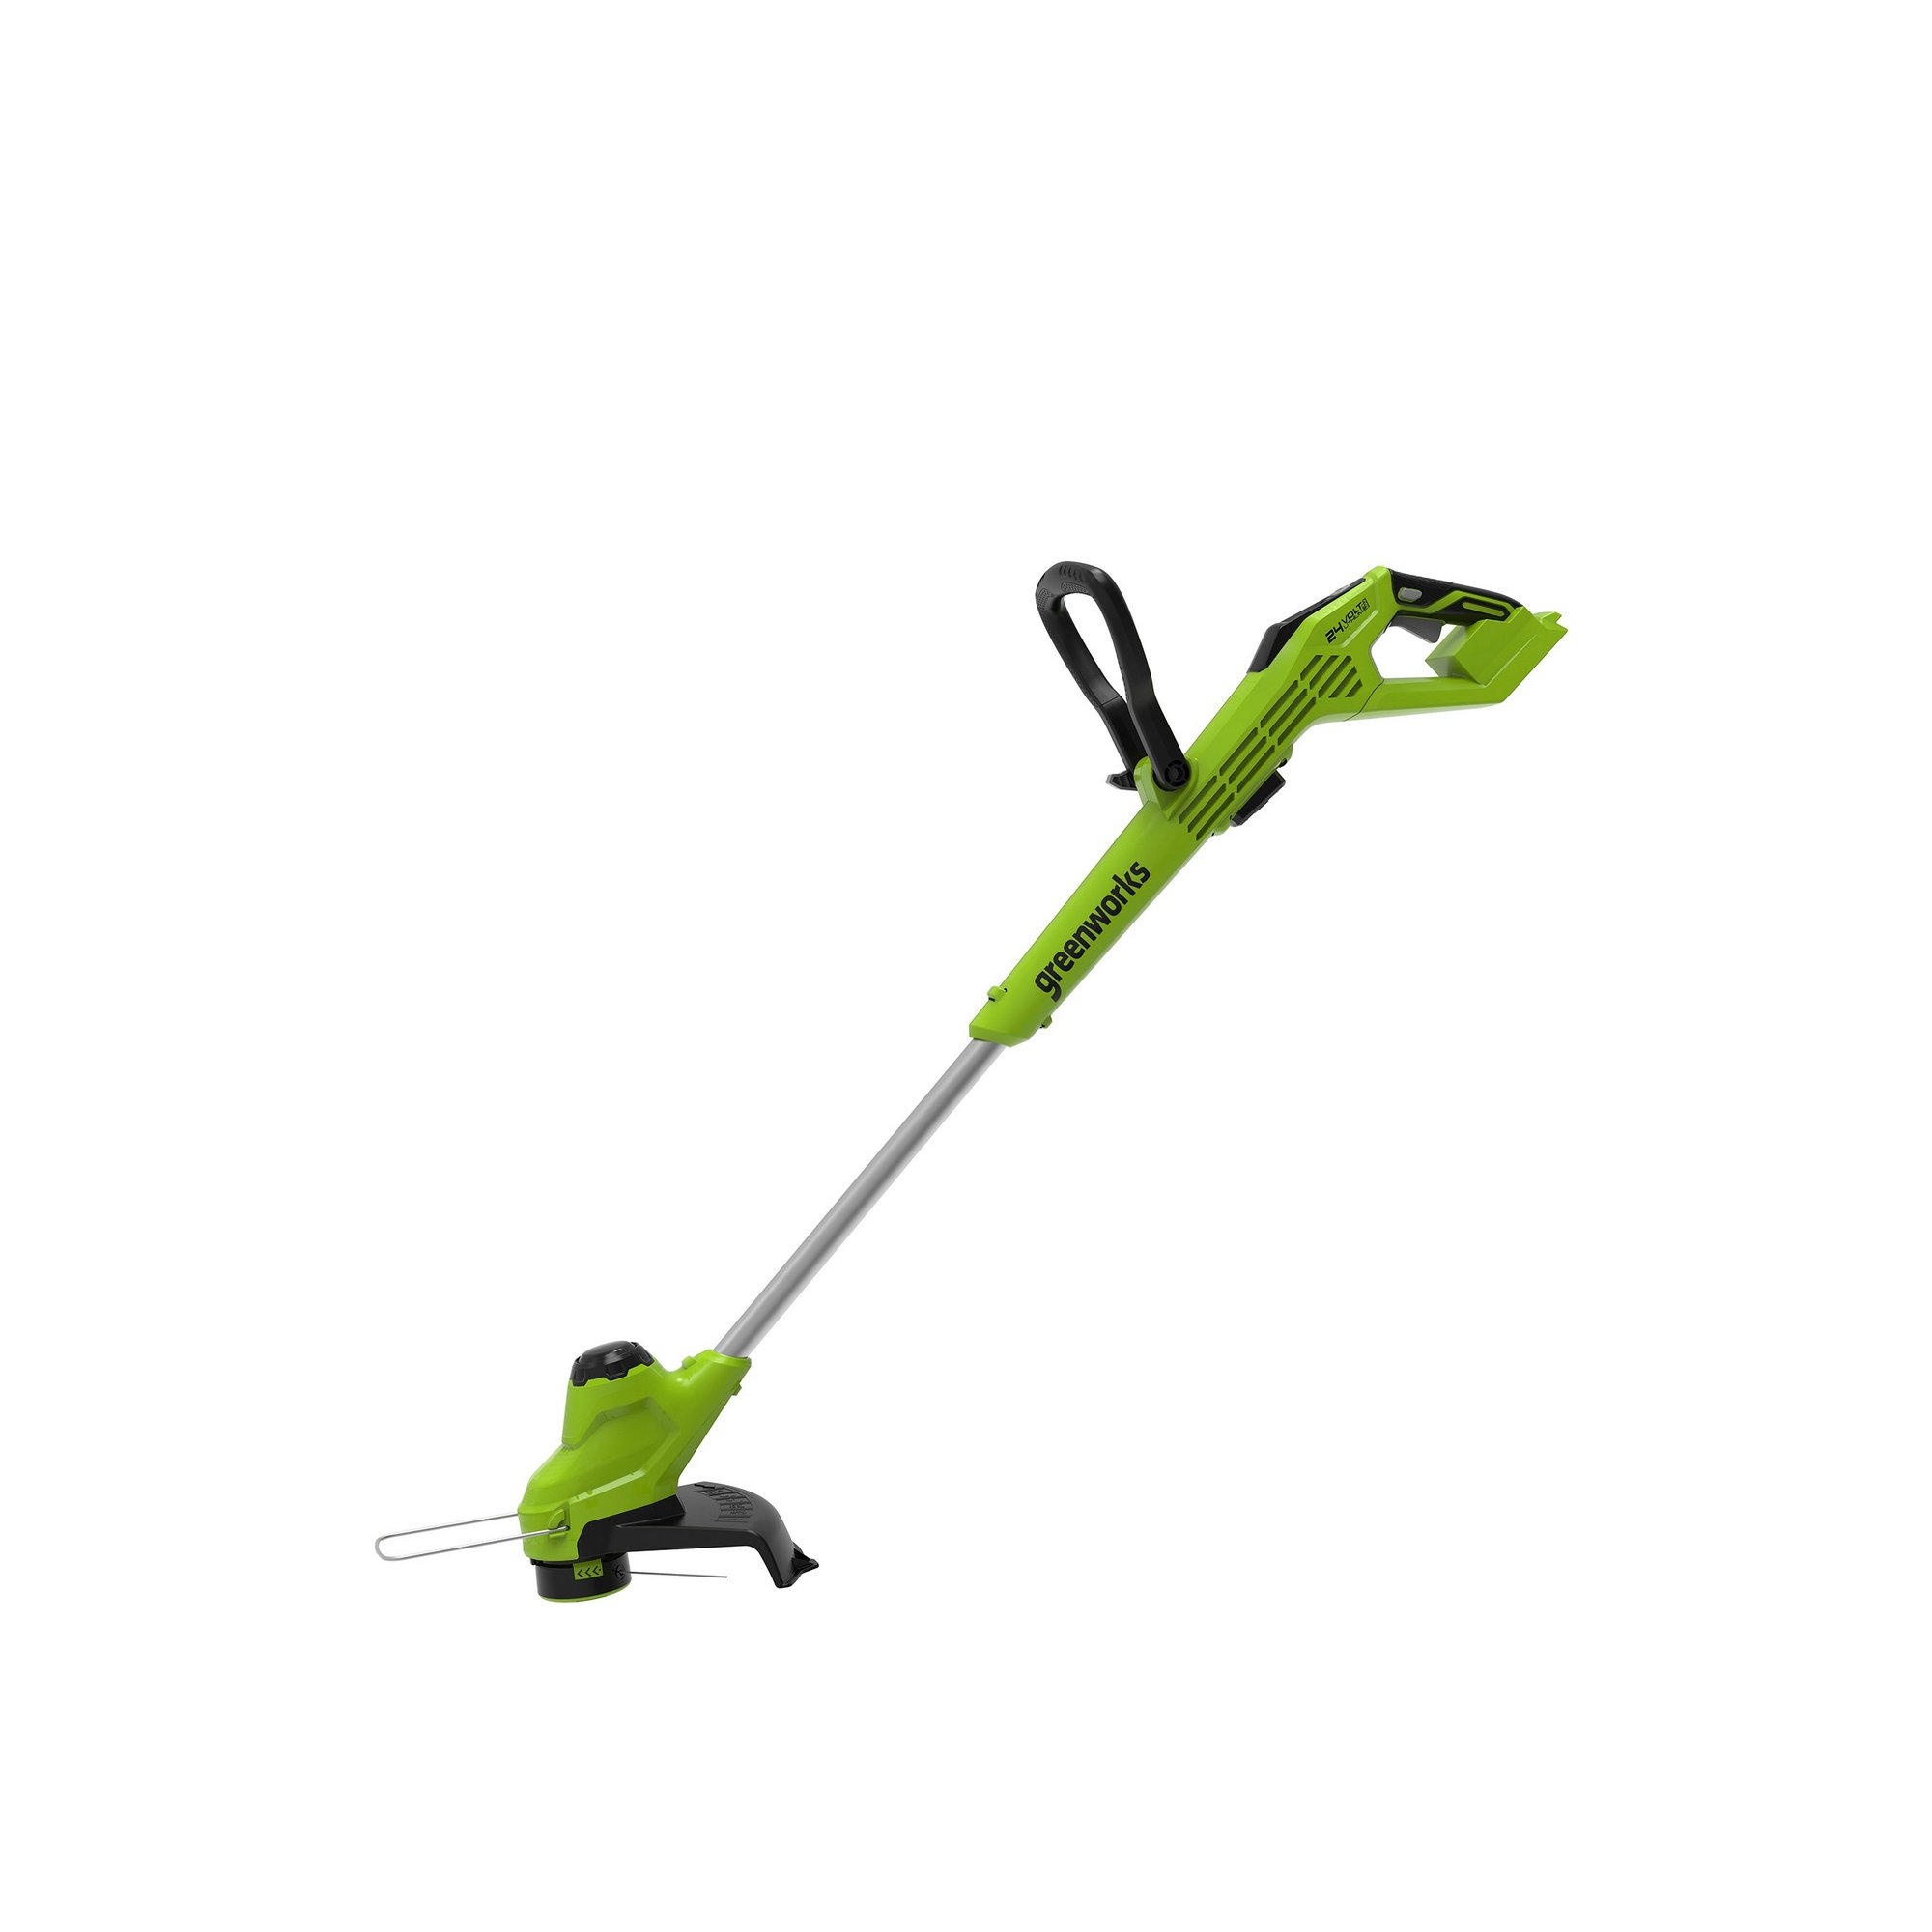 Image of Greenworks Cordless 28cm Line Trimmer (Tool Only)